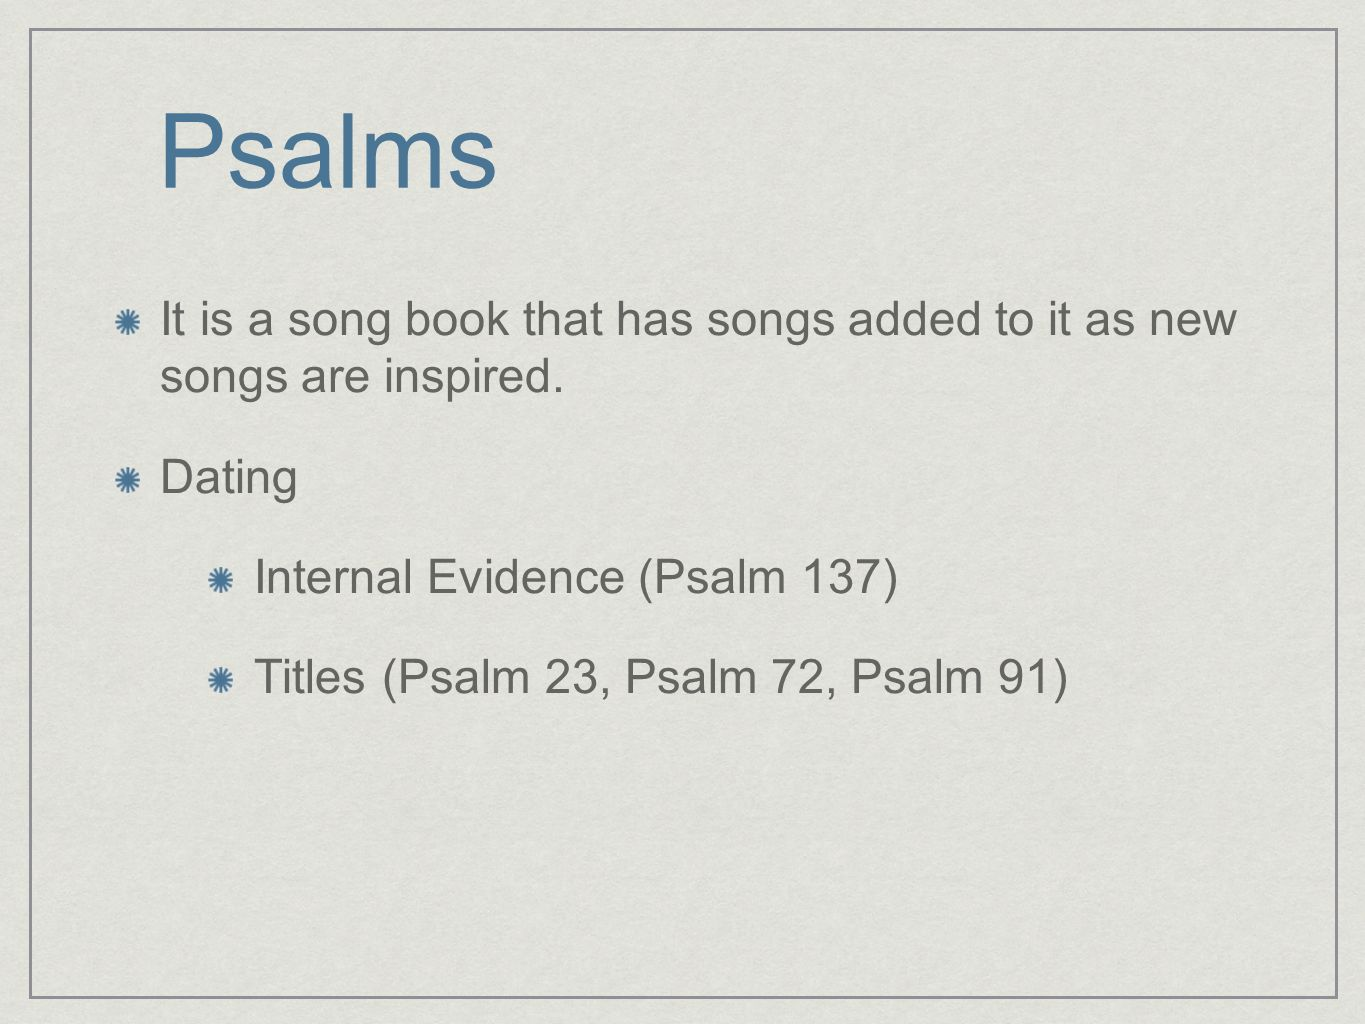 PsalmsIt is a song book that has songs added to it as new songs are inspired. Dating. Internal Evidence (Psalm 137)